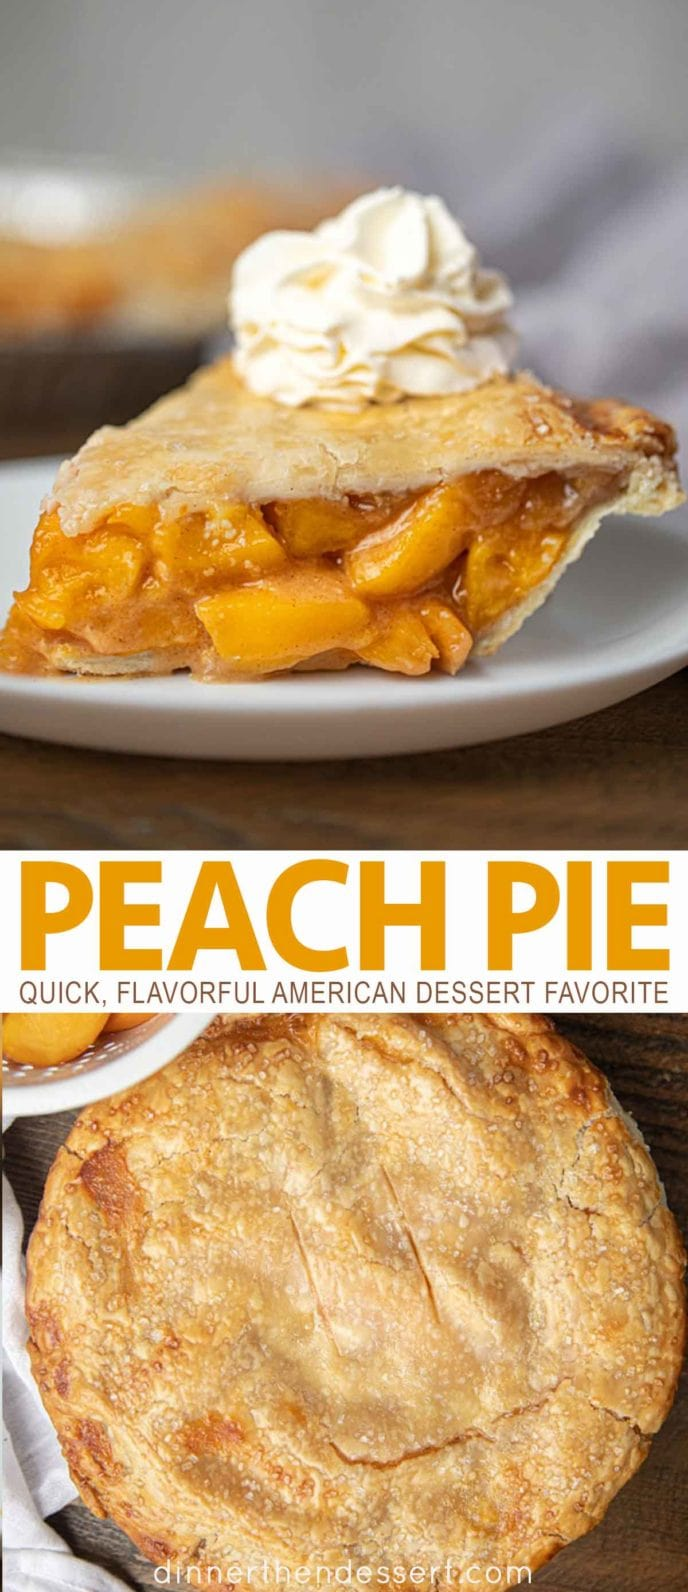 Peach pie with whipped cream